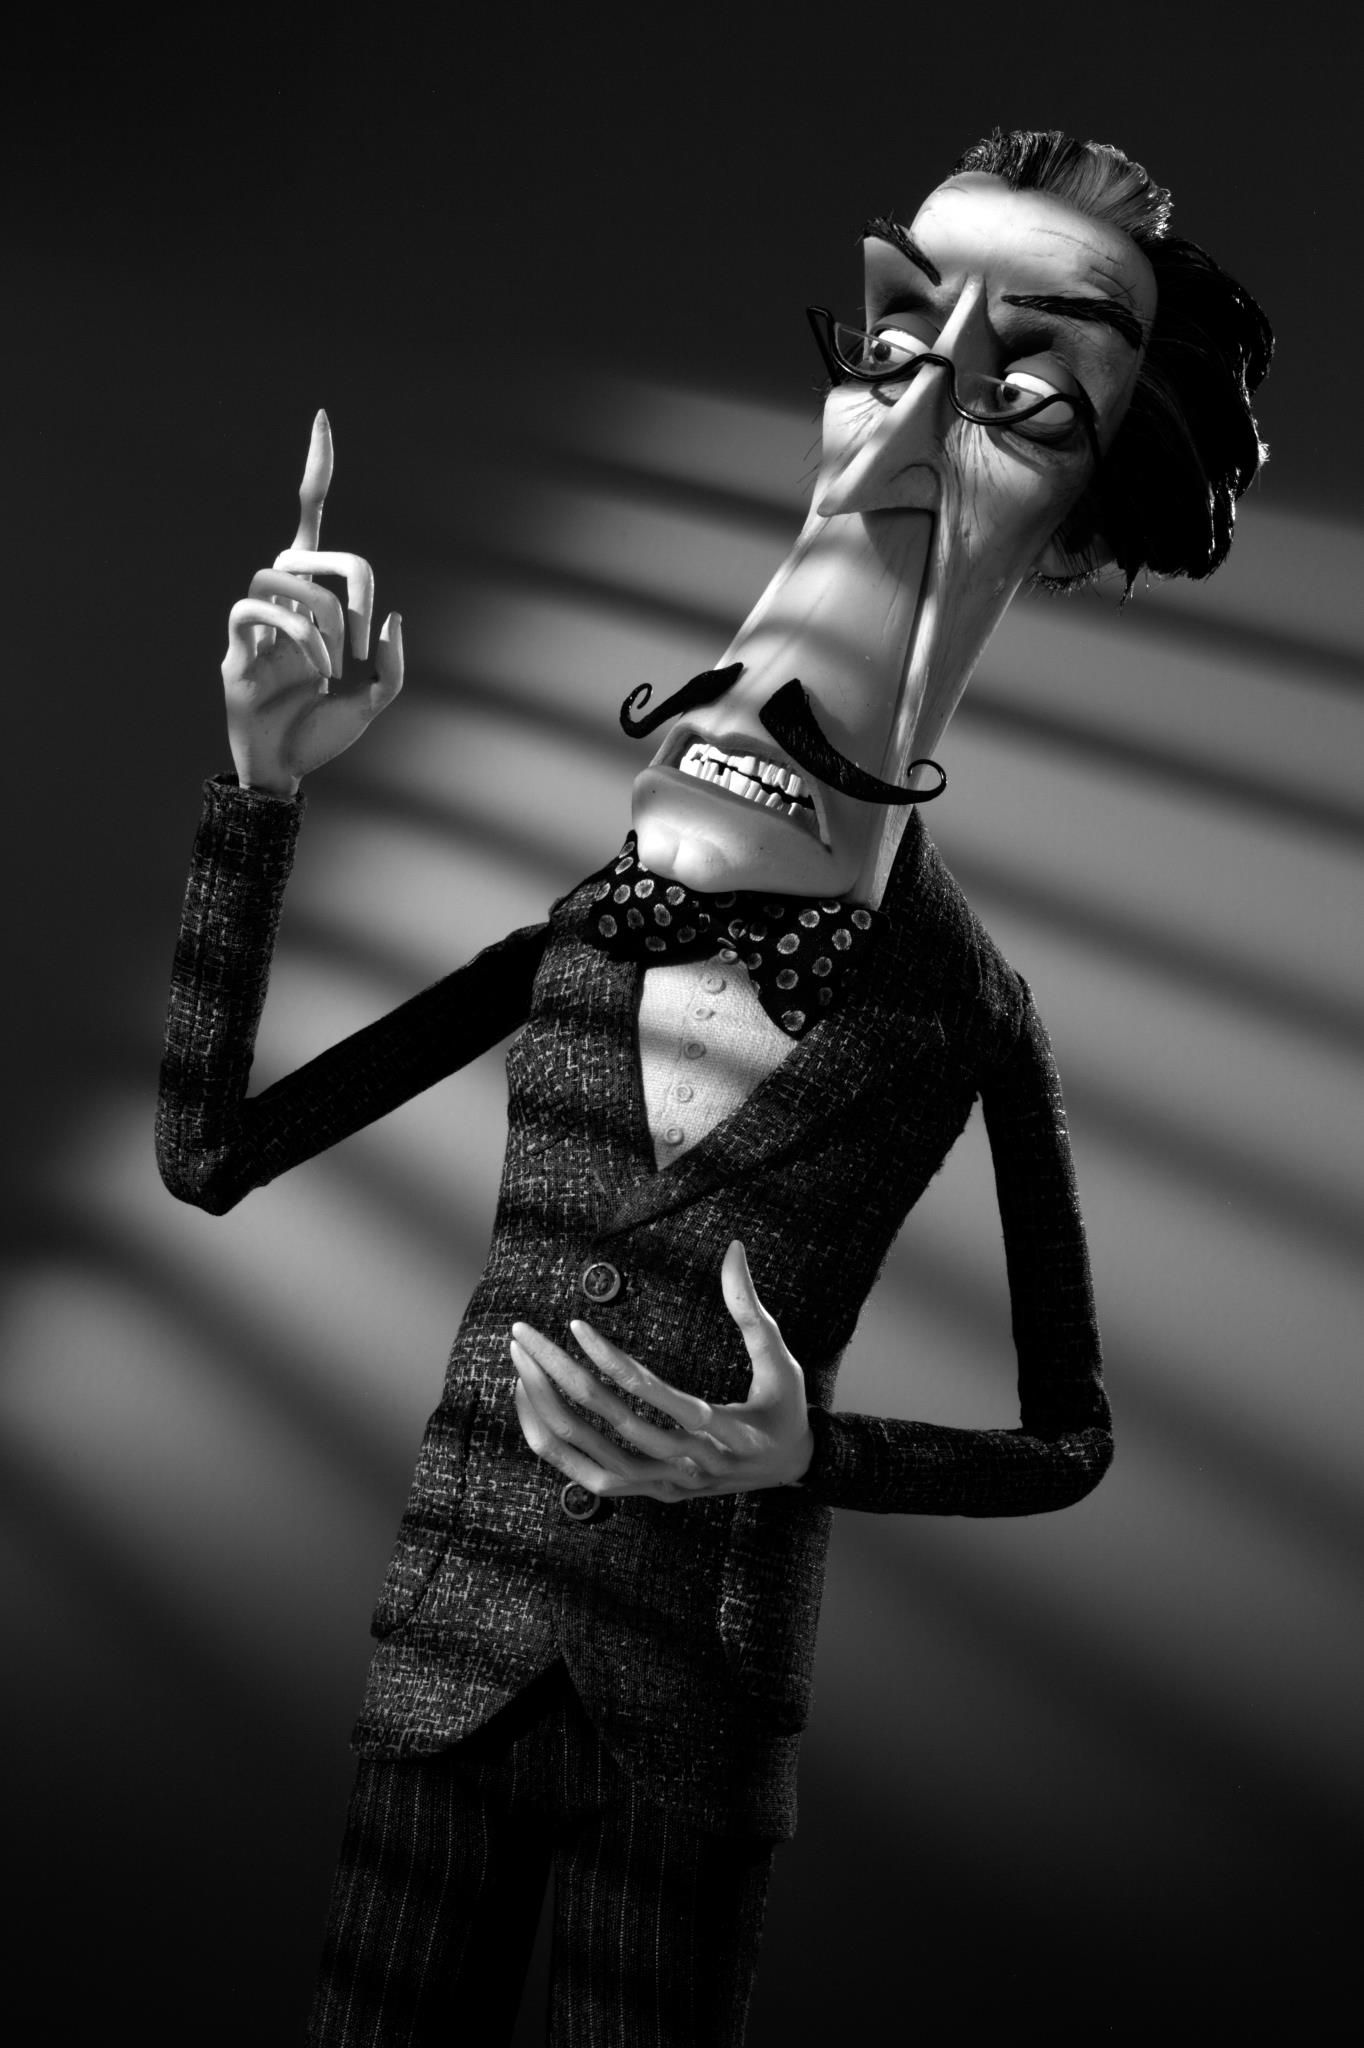 Mr. Kzykruski from Frankenweenie